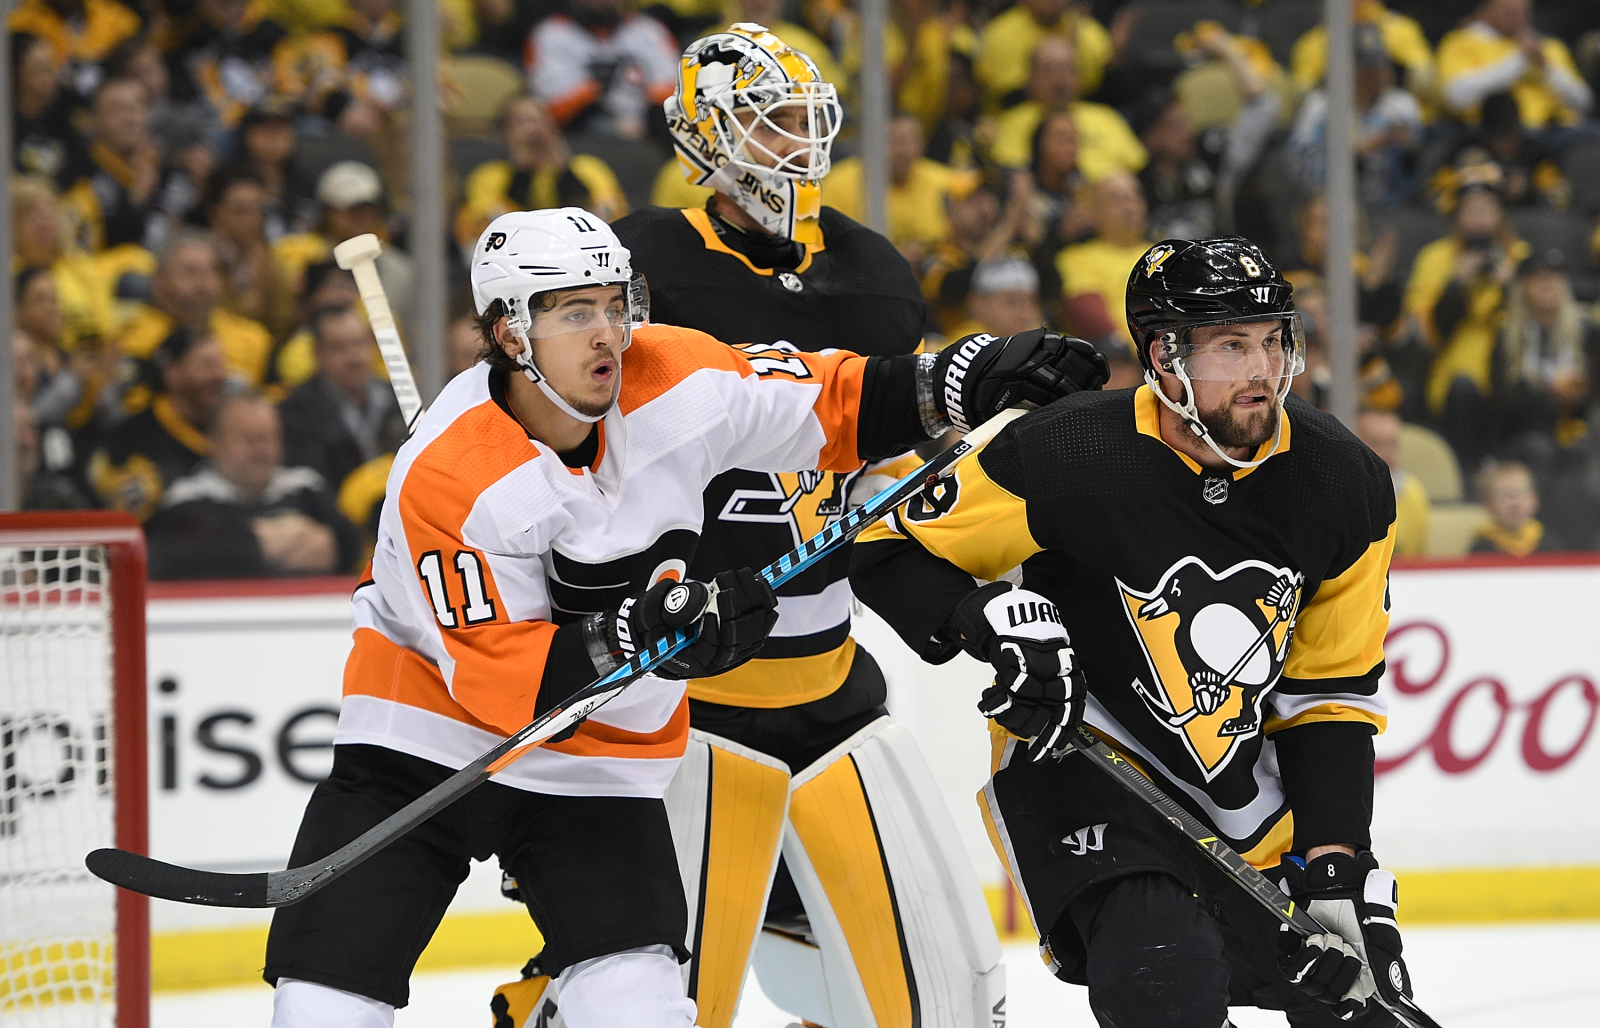 Philadelphia Flyers: A First Round Matchup With The Penguins